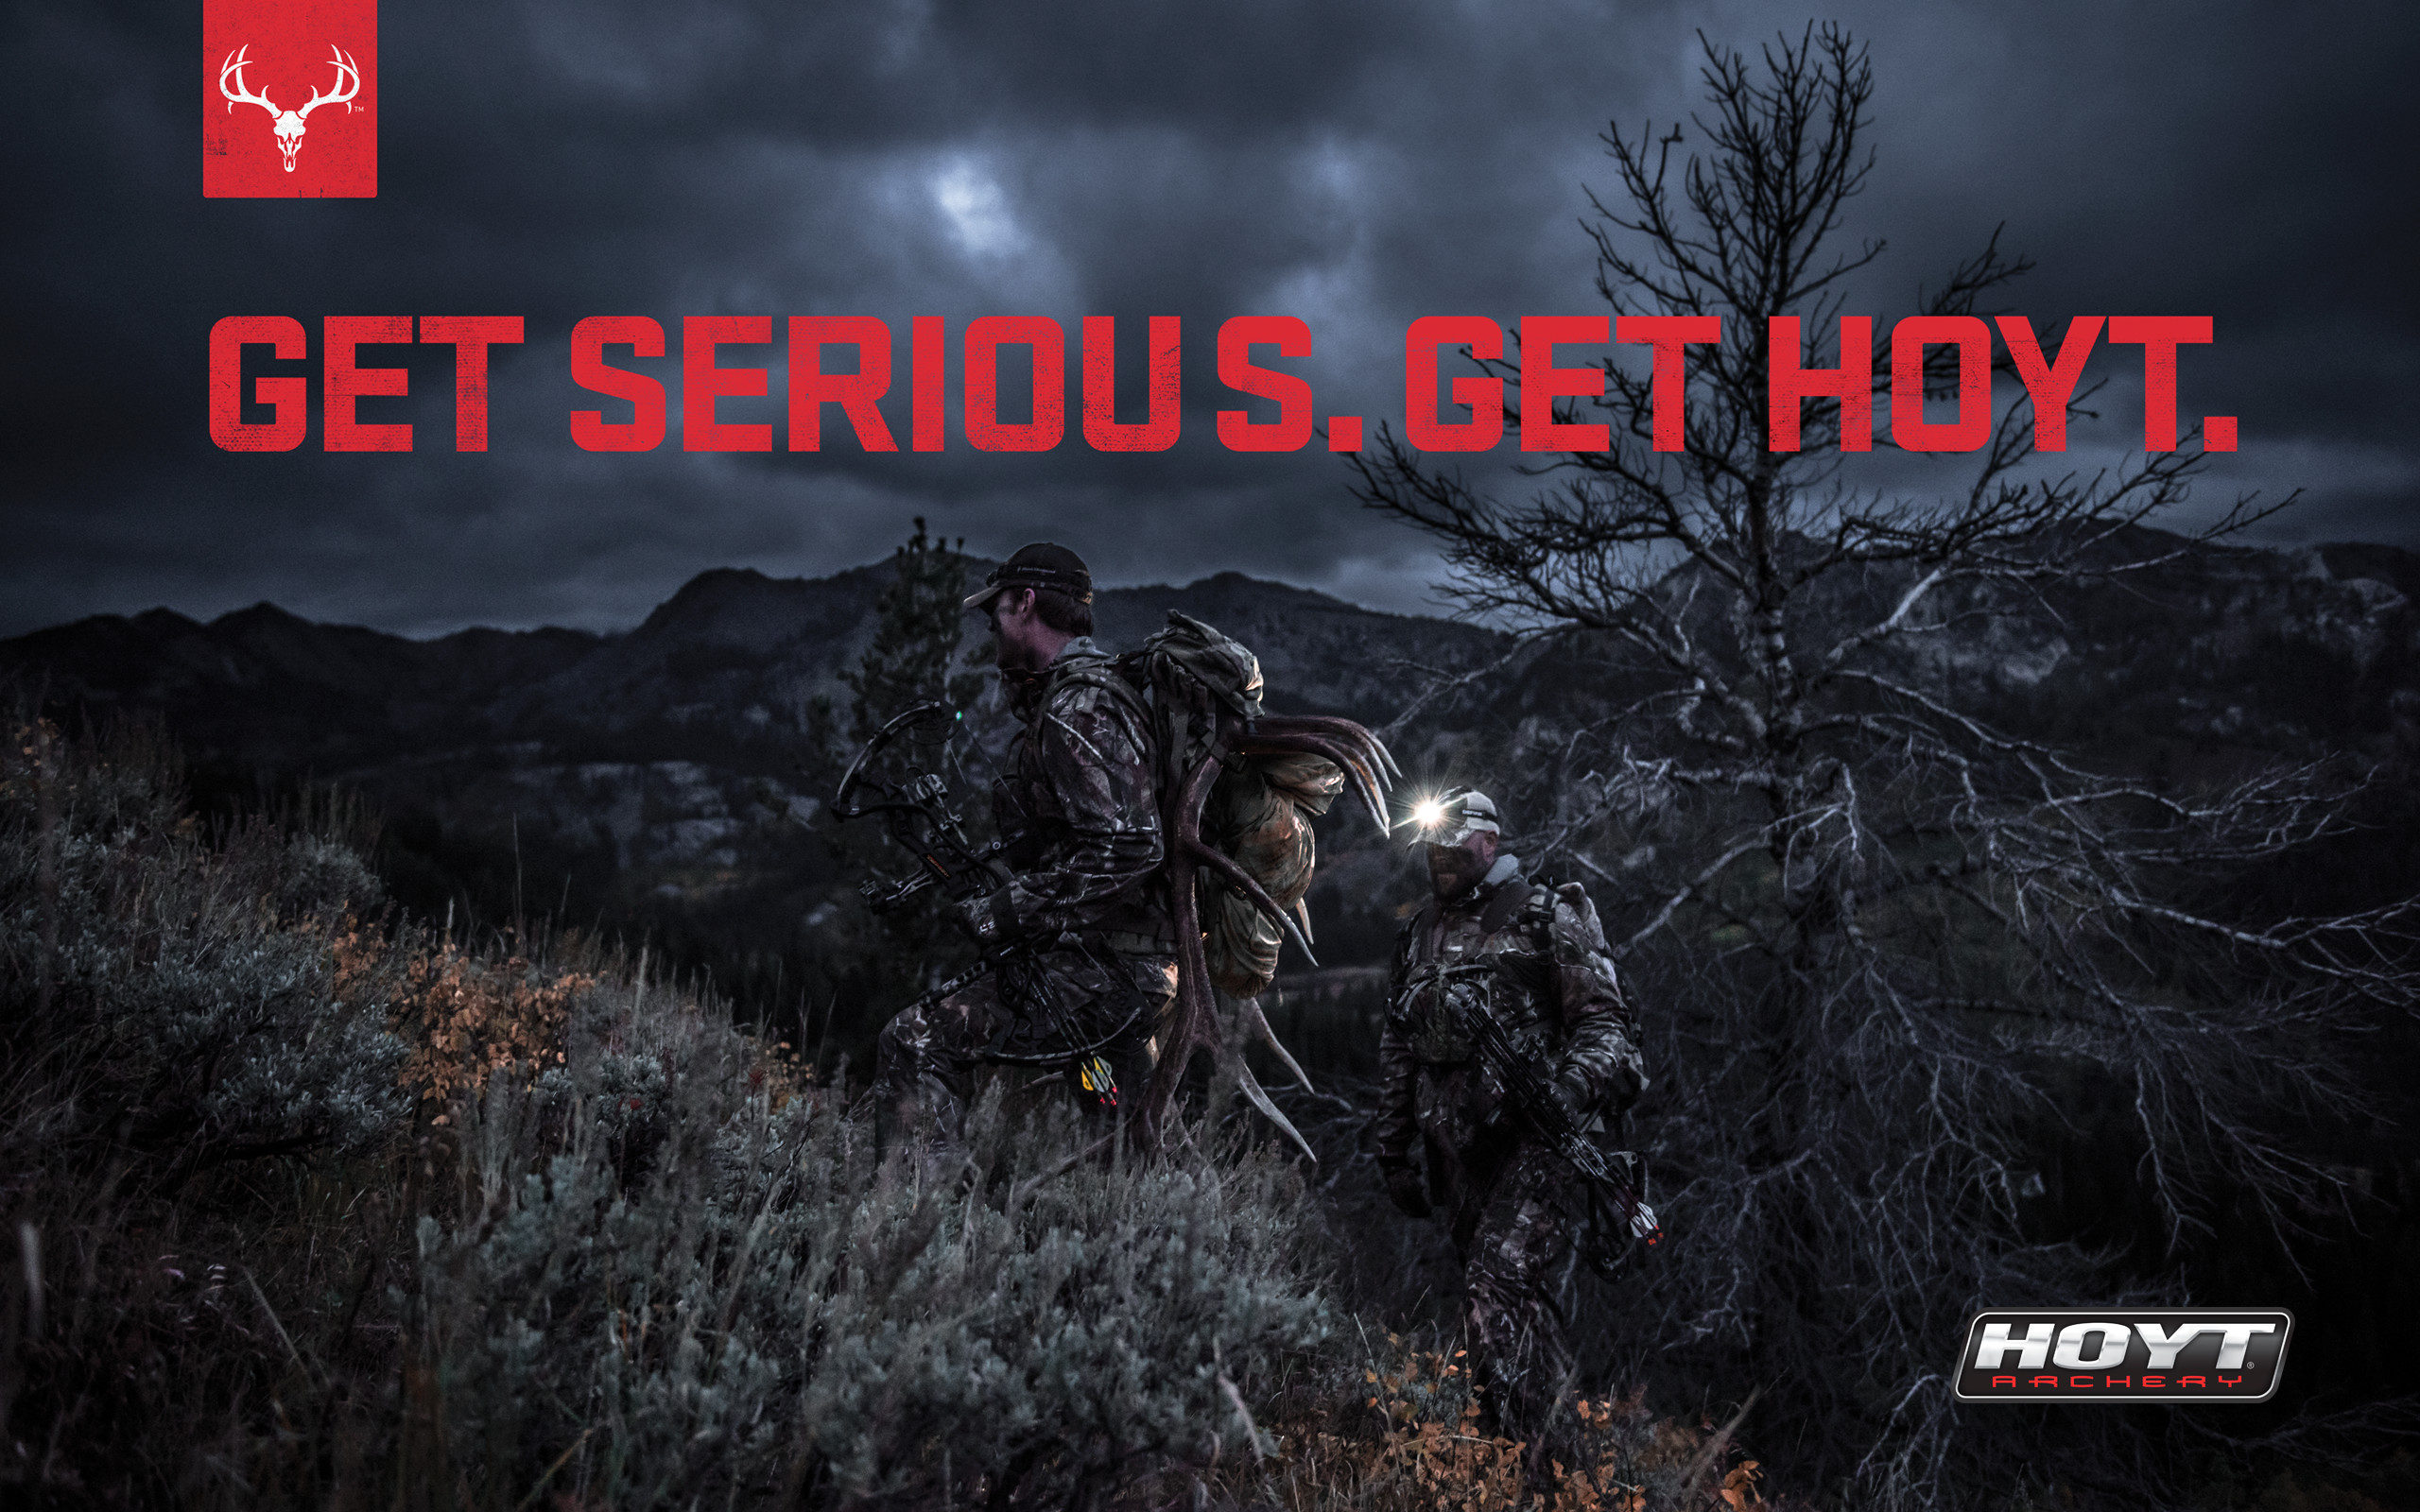 bowhunting wallpaper ignite wallpaper get serious get hoyt traditional .